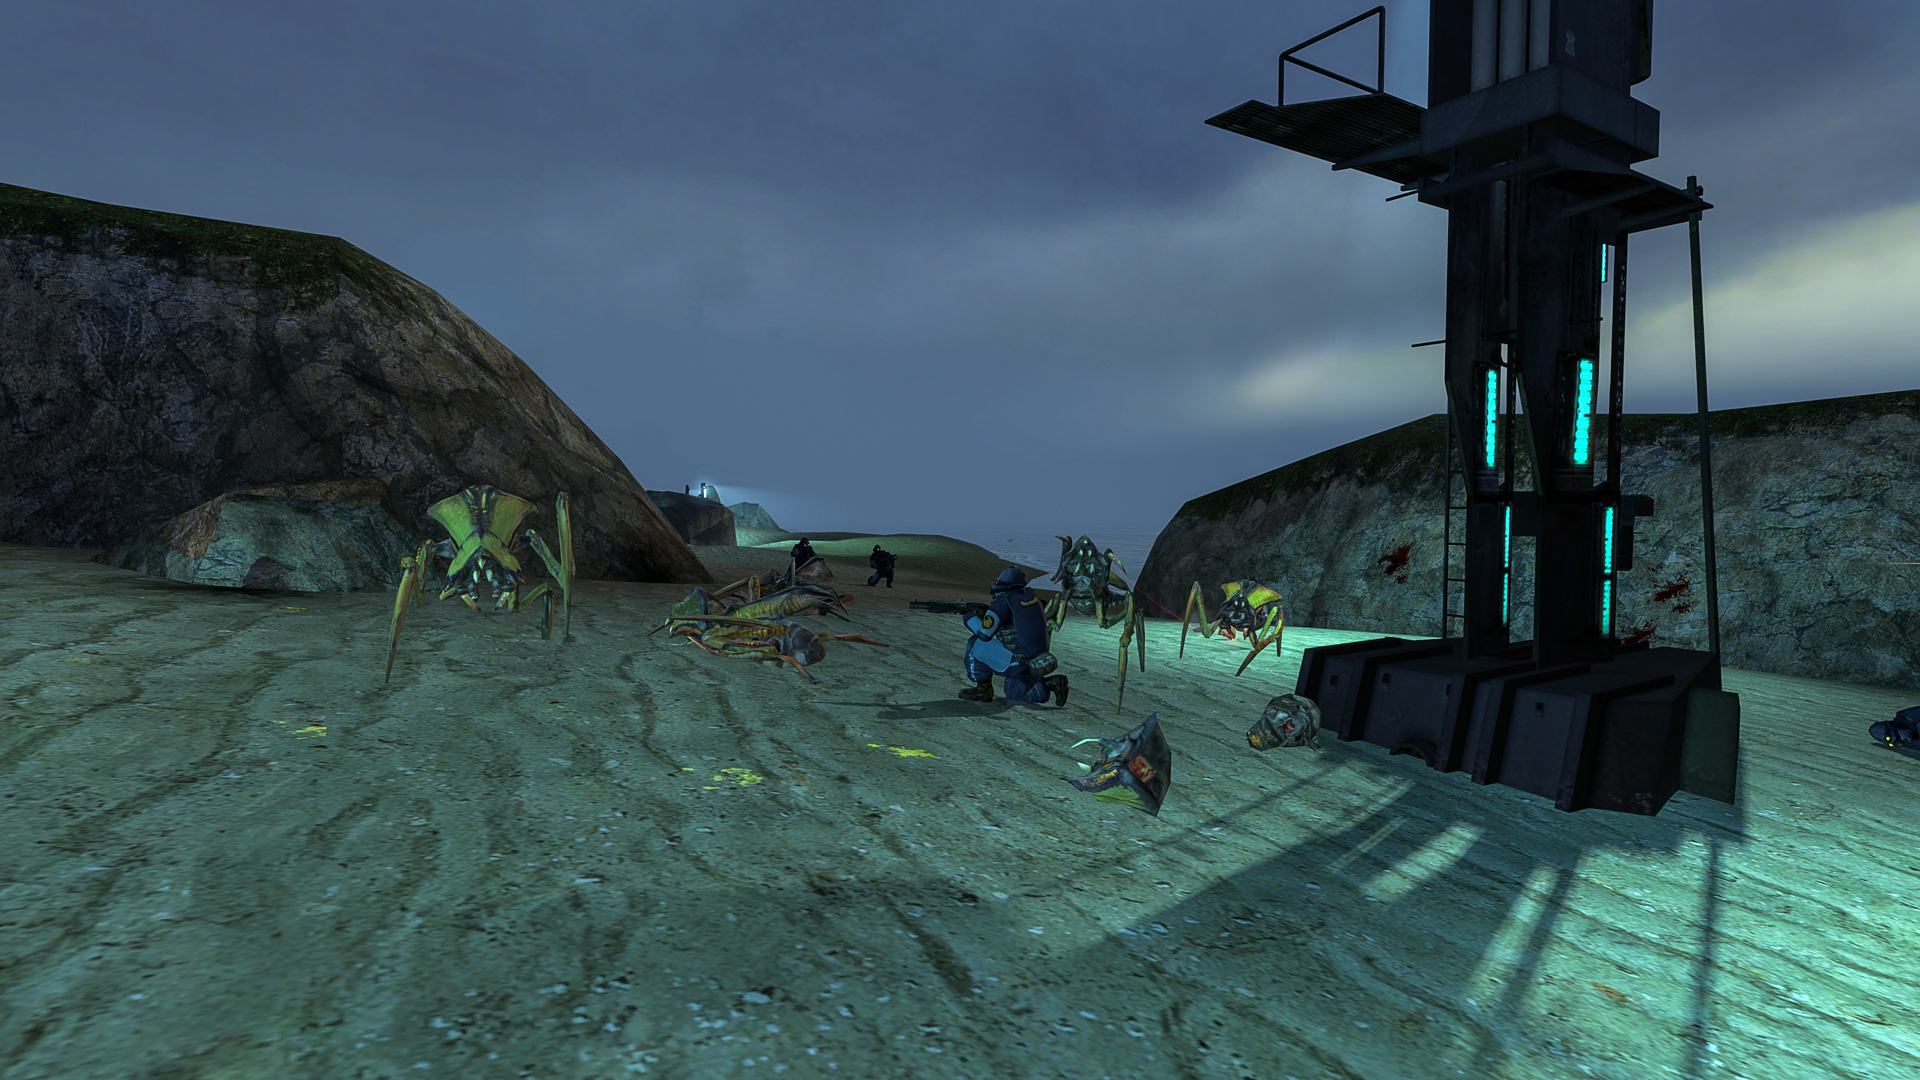 10 years on, Half-Life 2 gets a major graphics update on